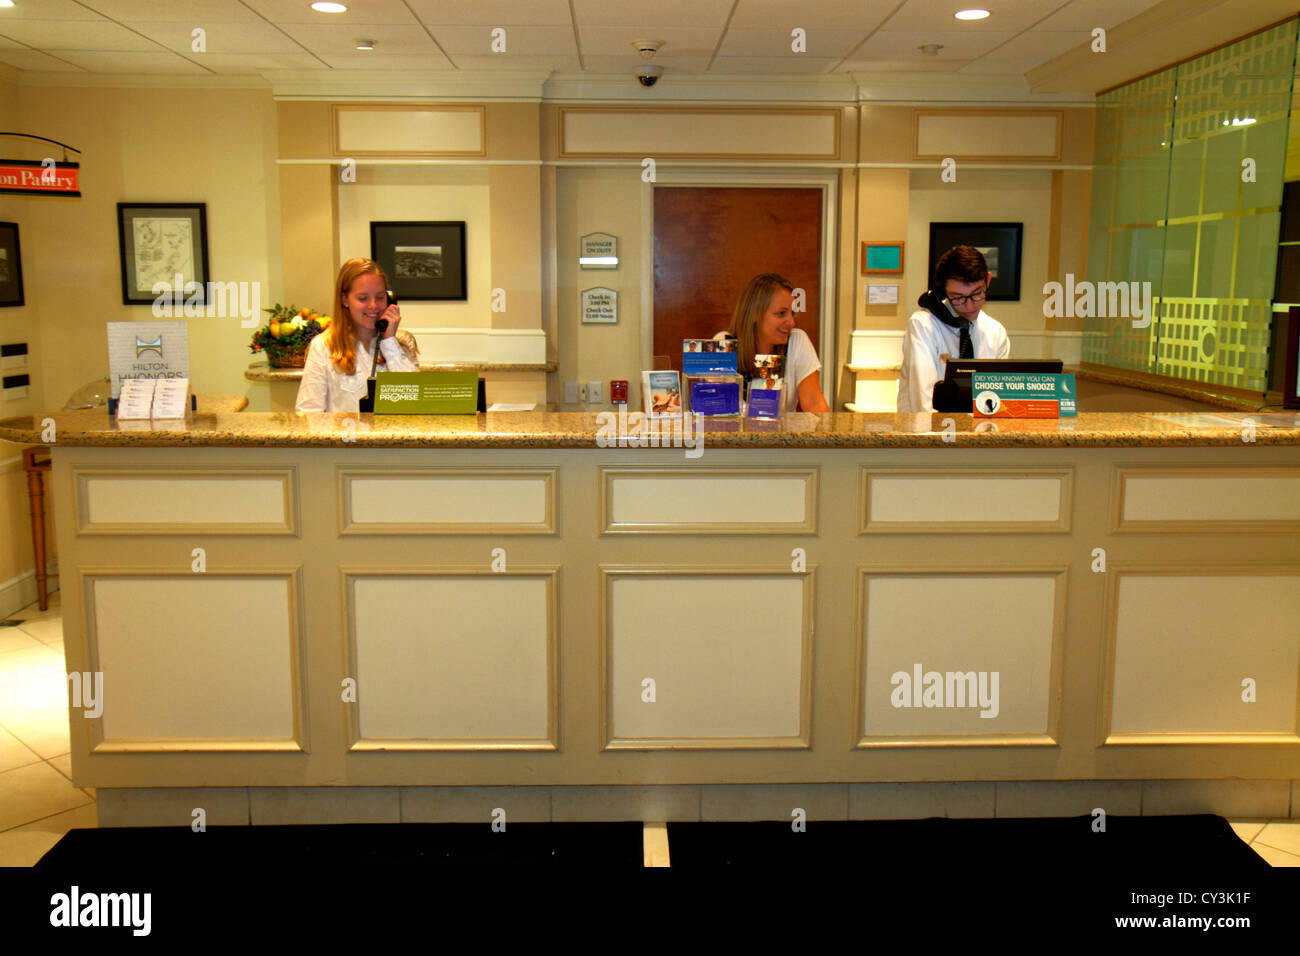 Hilton Garden Inn Stock Photos & Hilton Garden Inn Stock Images - Alamy